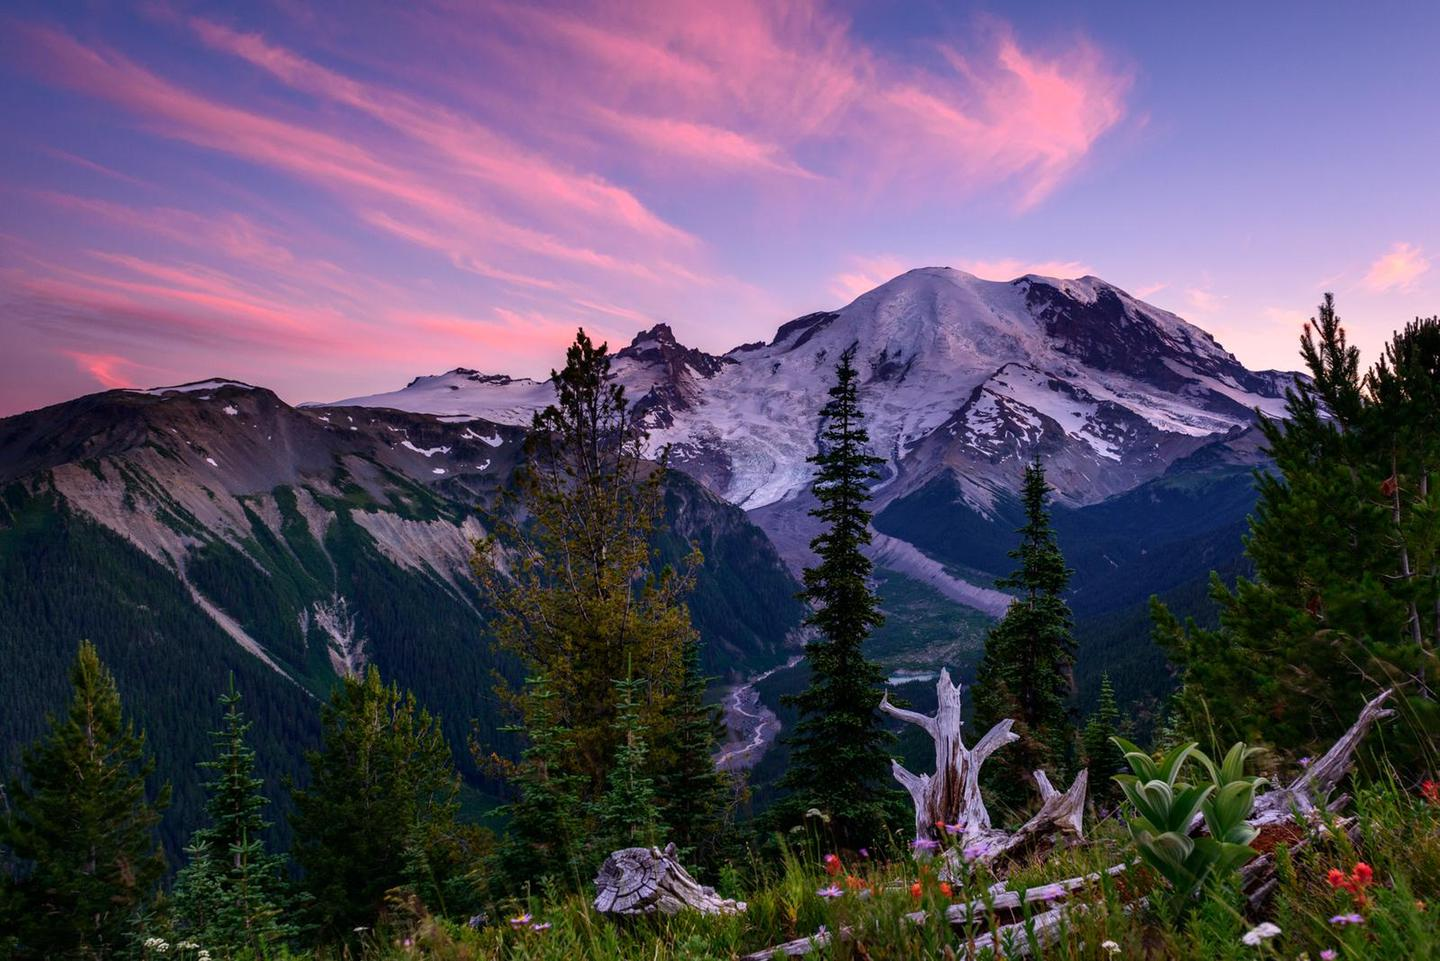 Silver Forest SunsetThe Silver Forest Trail at Sunrise features spectacular views of Mount Rainier and the White River valley.